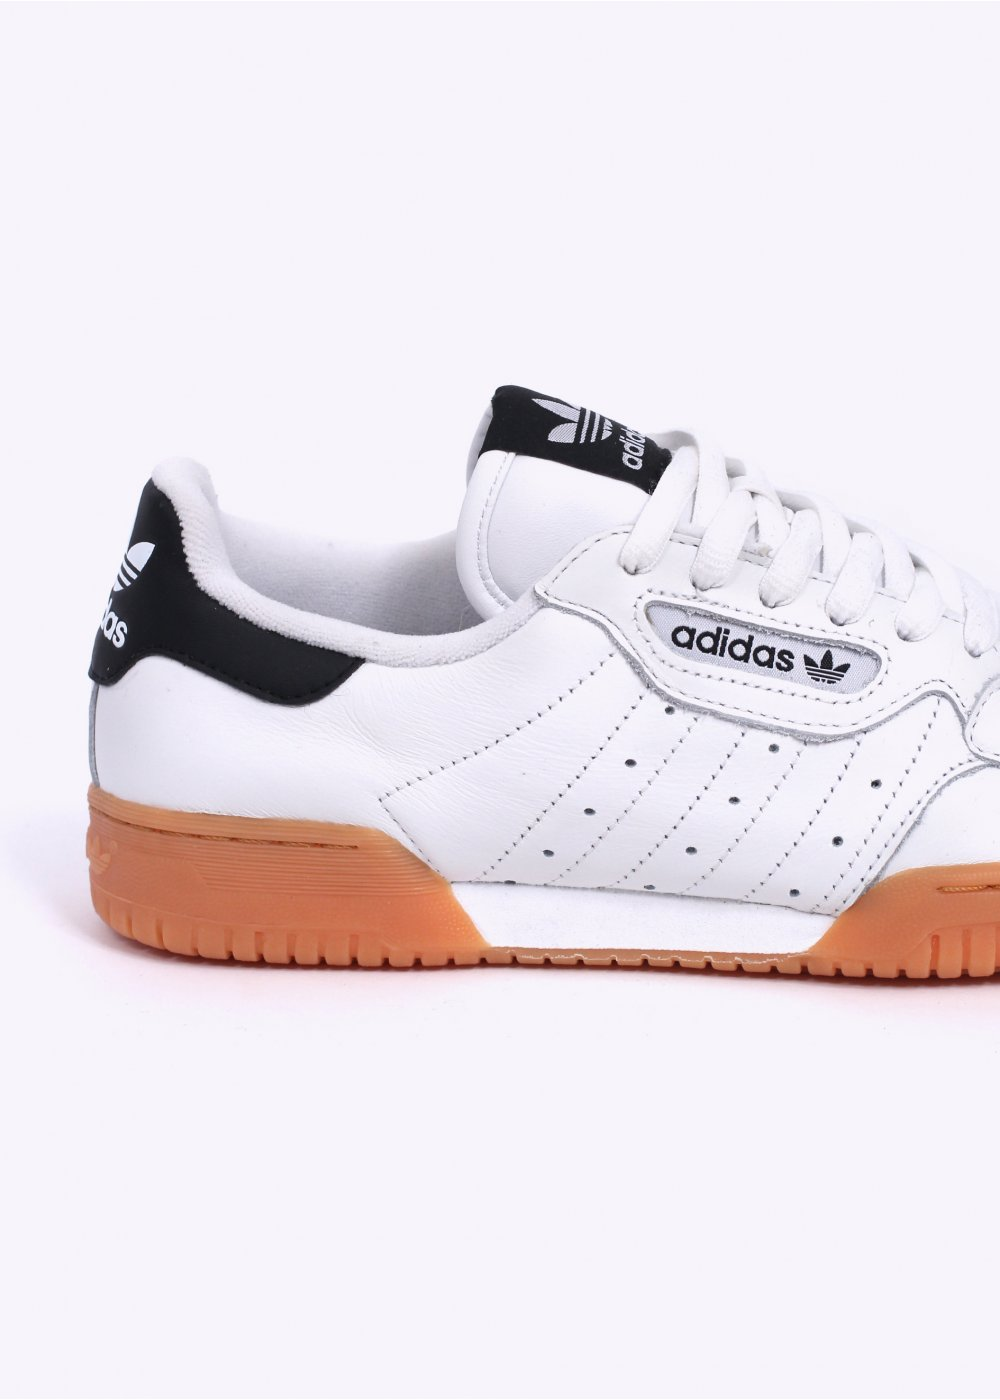 131da6e50ff31 adidas Originals Powerphase OG Trainers - White